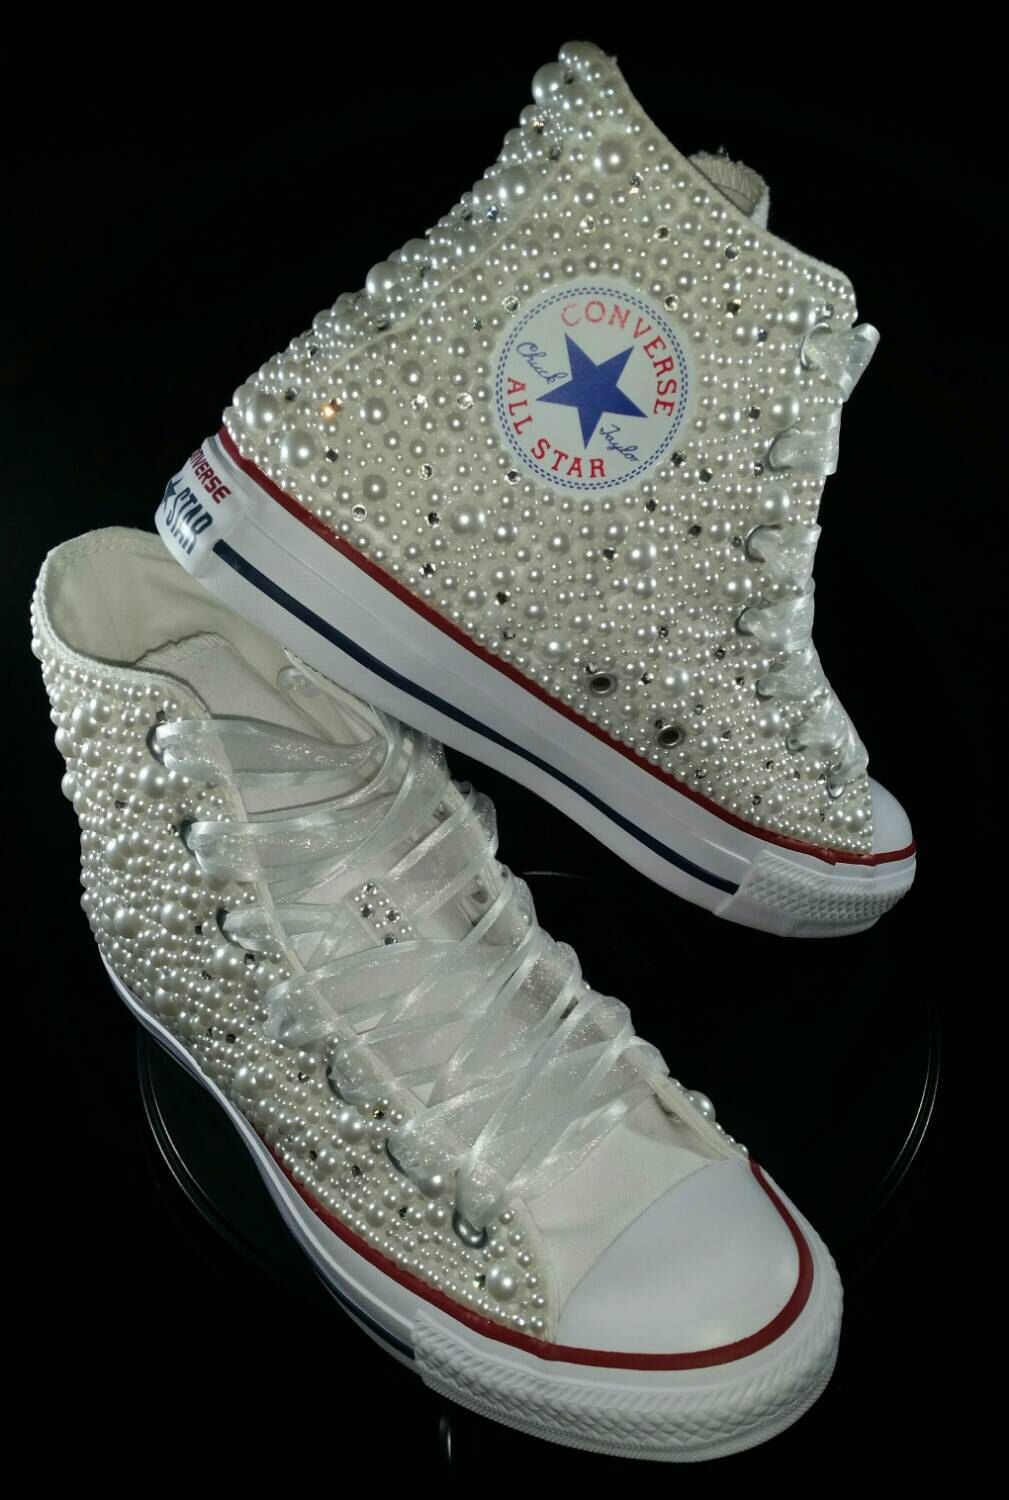 ... shoes b0212 50141  where to buy bridal converse wedding converse bling  pearls custom converse sneakers personalized chuck taylors all 06e38ba40